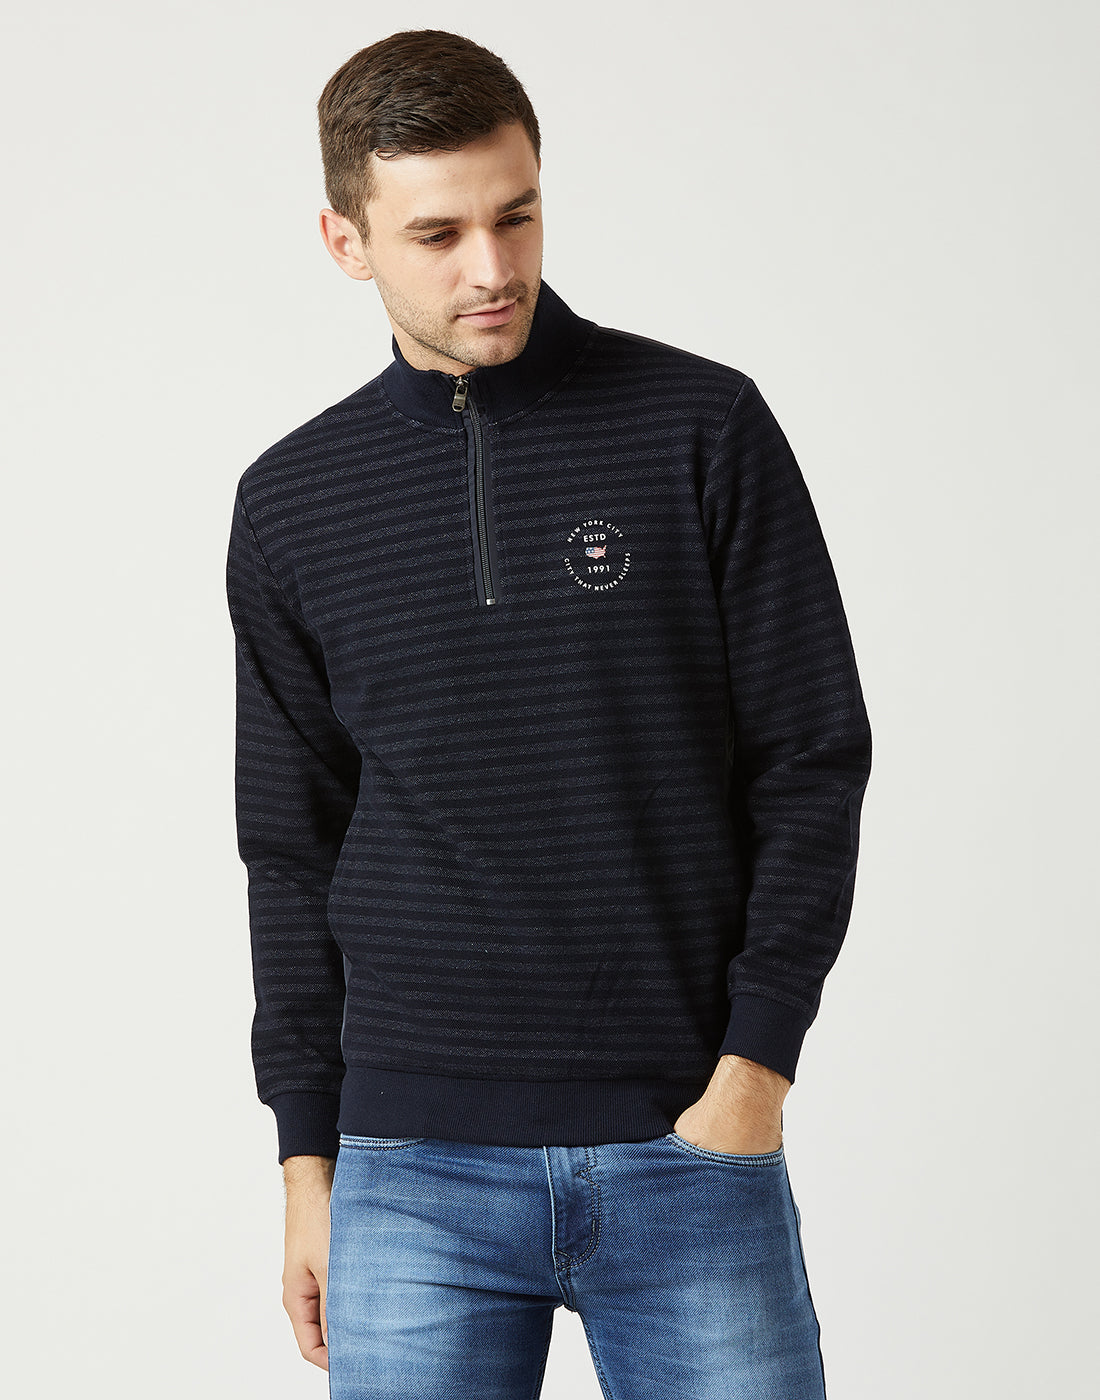 Octave Men Navy Striped Sweatshirt